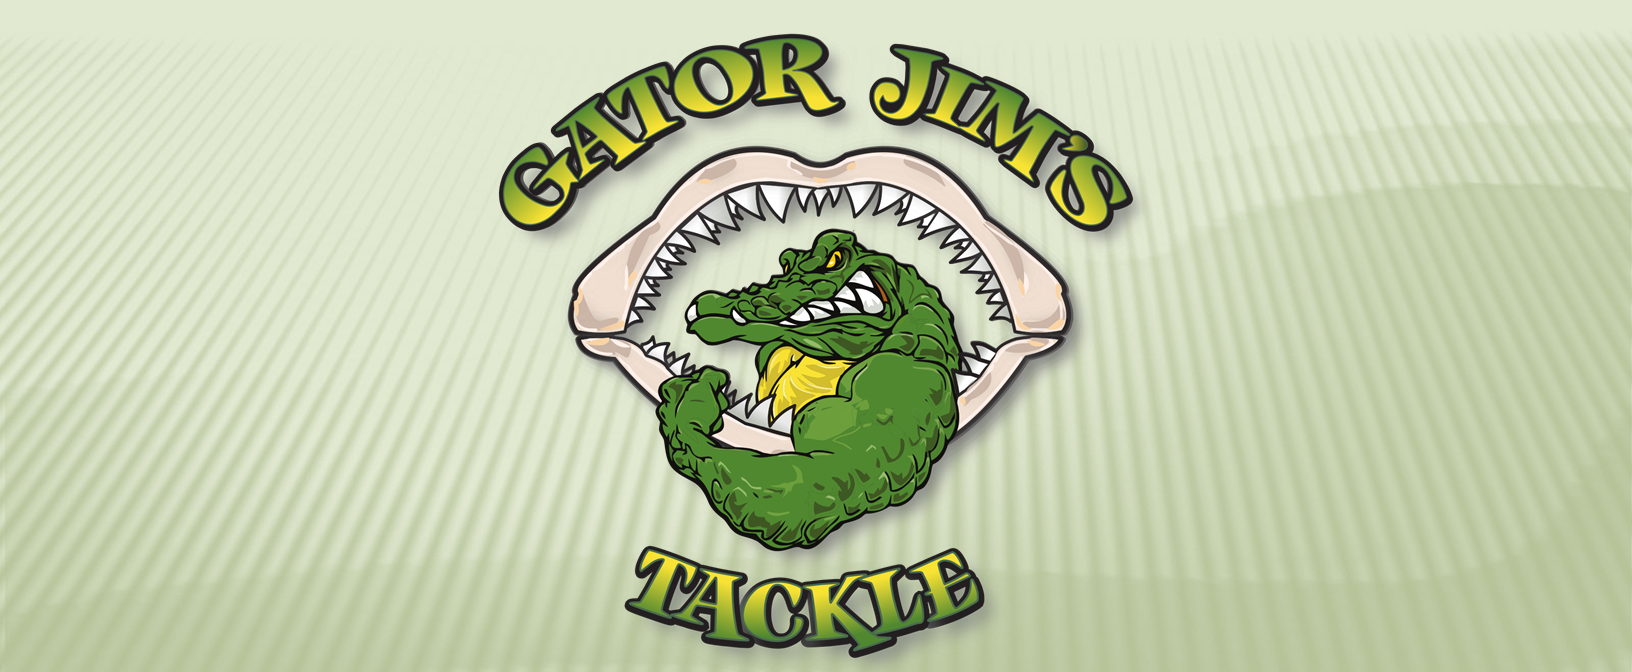 Gator Tackle St Pete Beach